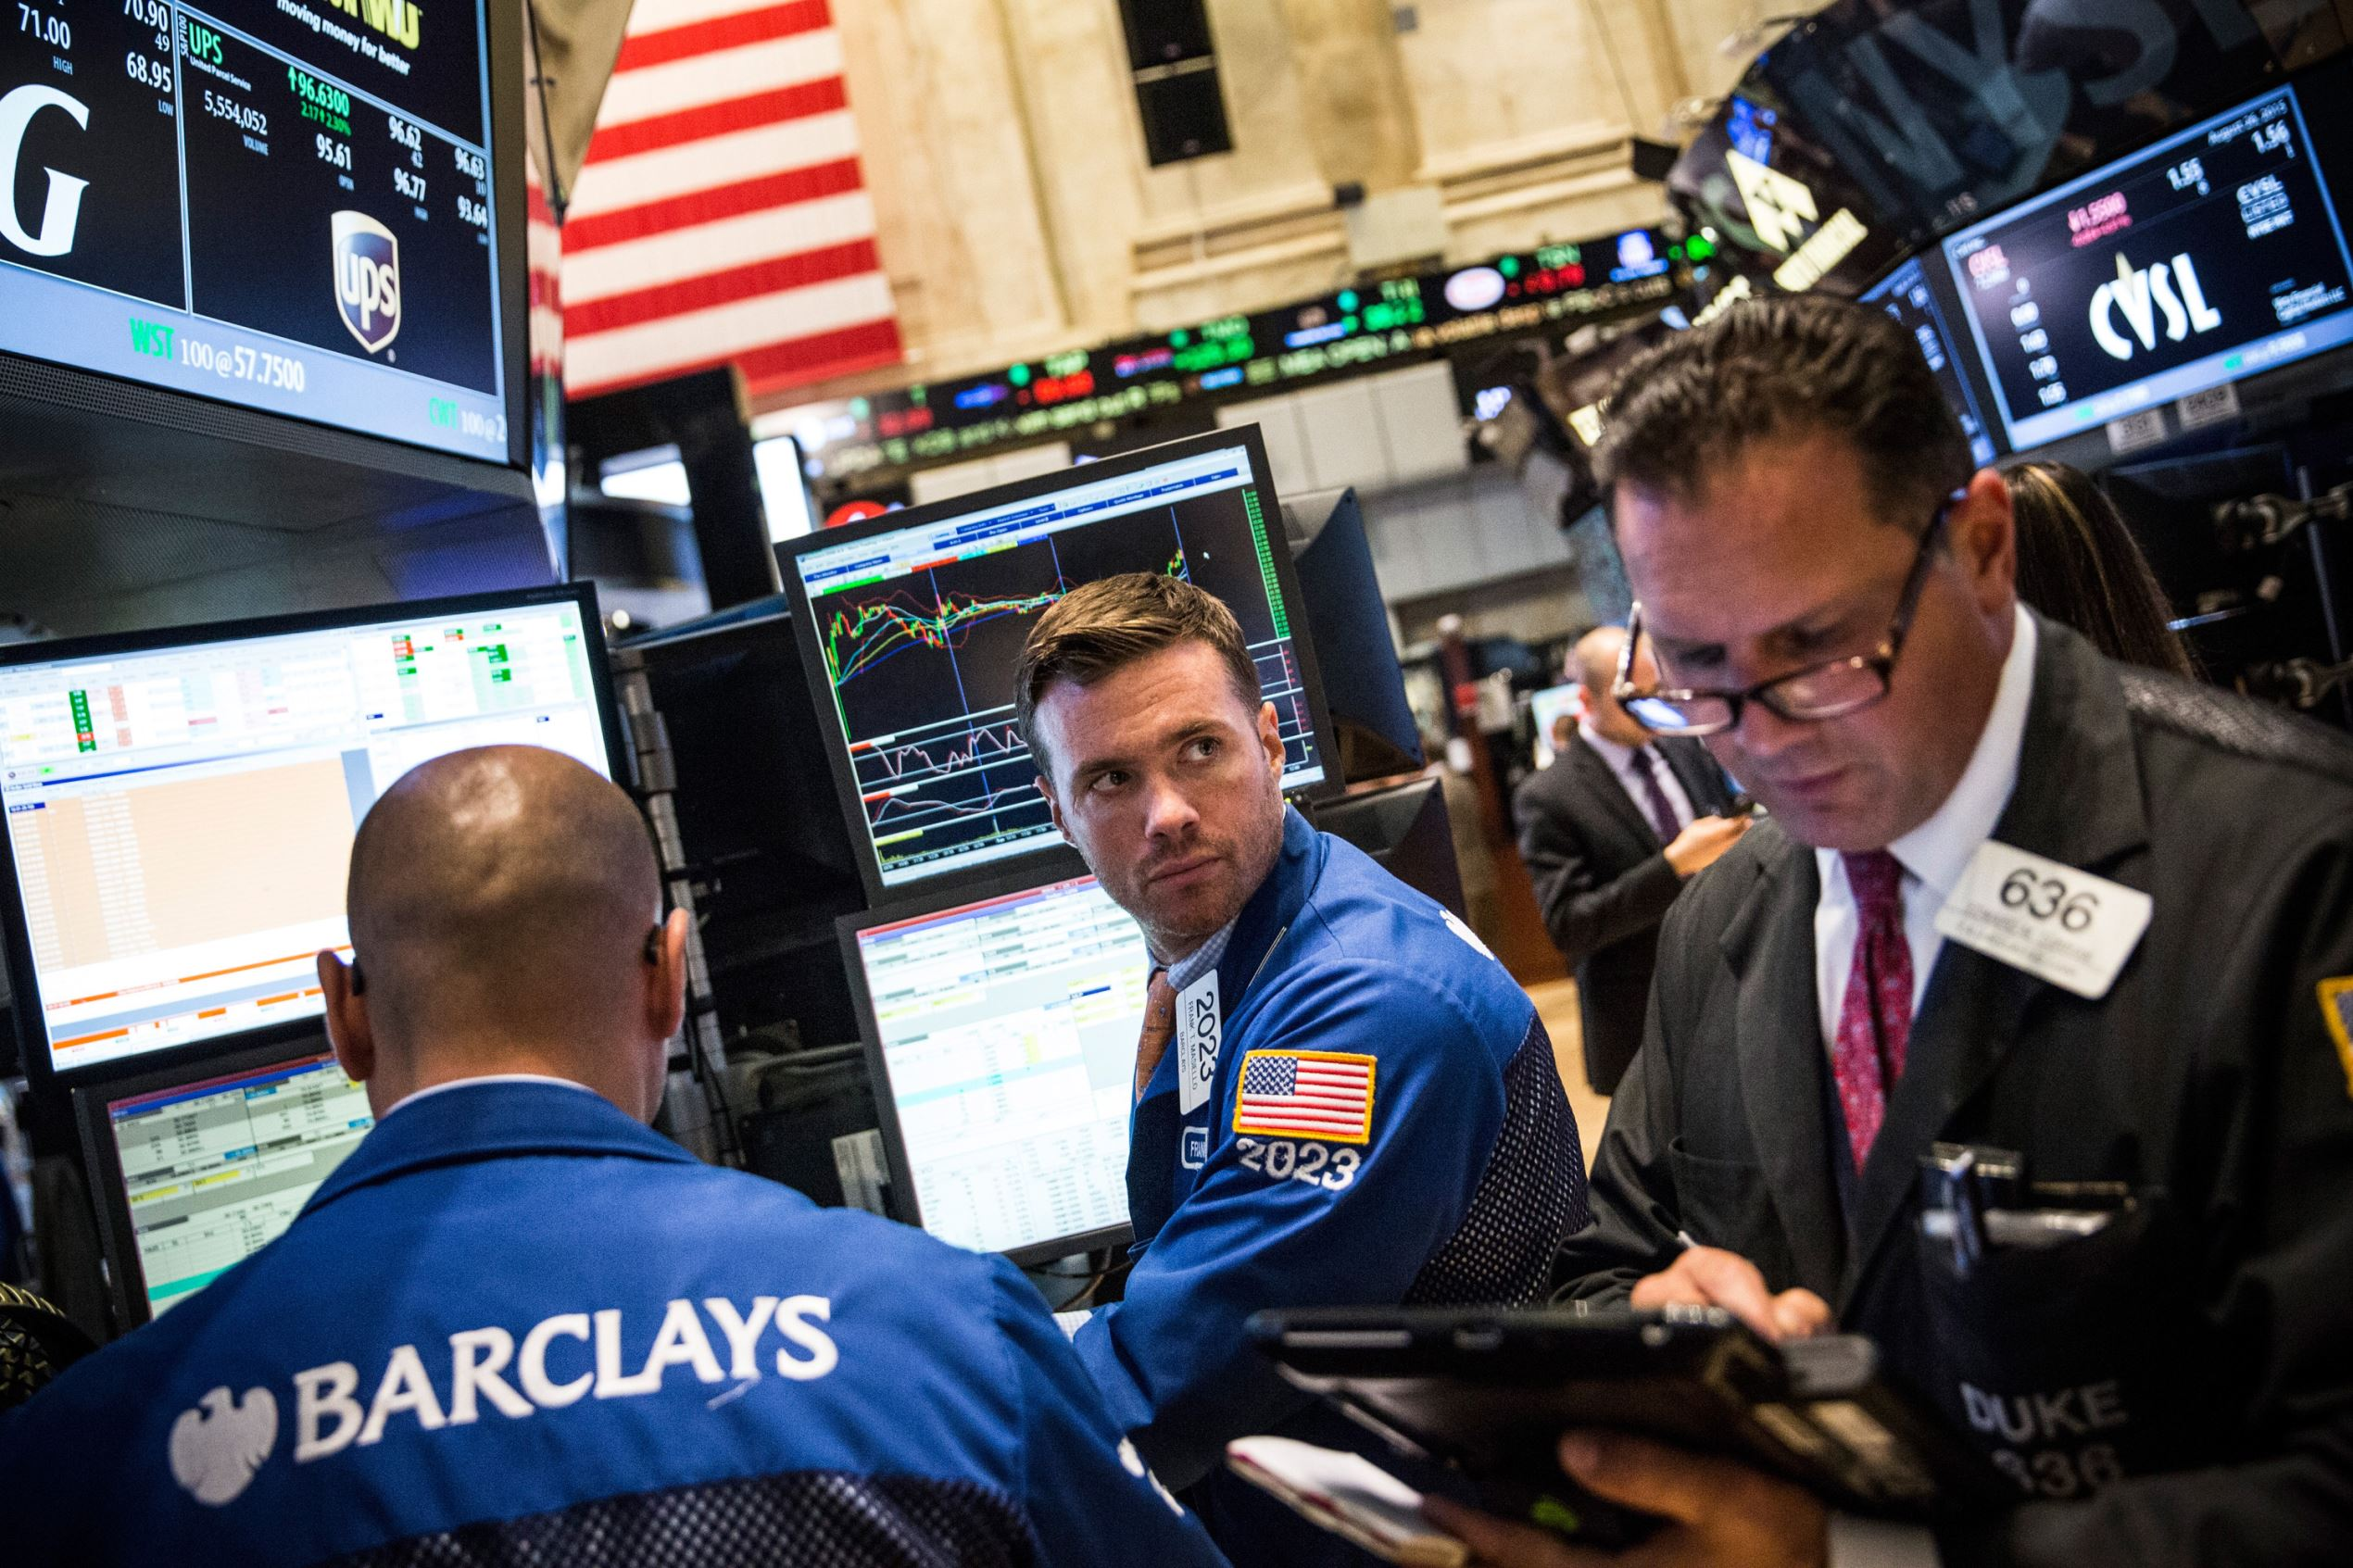 Traders work on the floor of the New York Stock Exchange during the afternoon of August 26, 2015 in New York City.